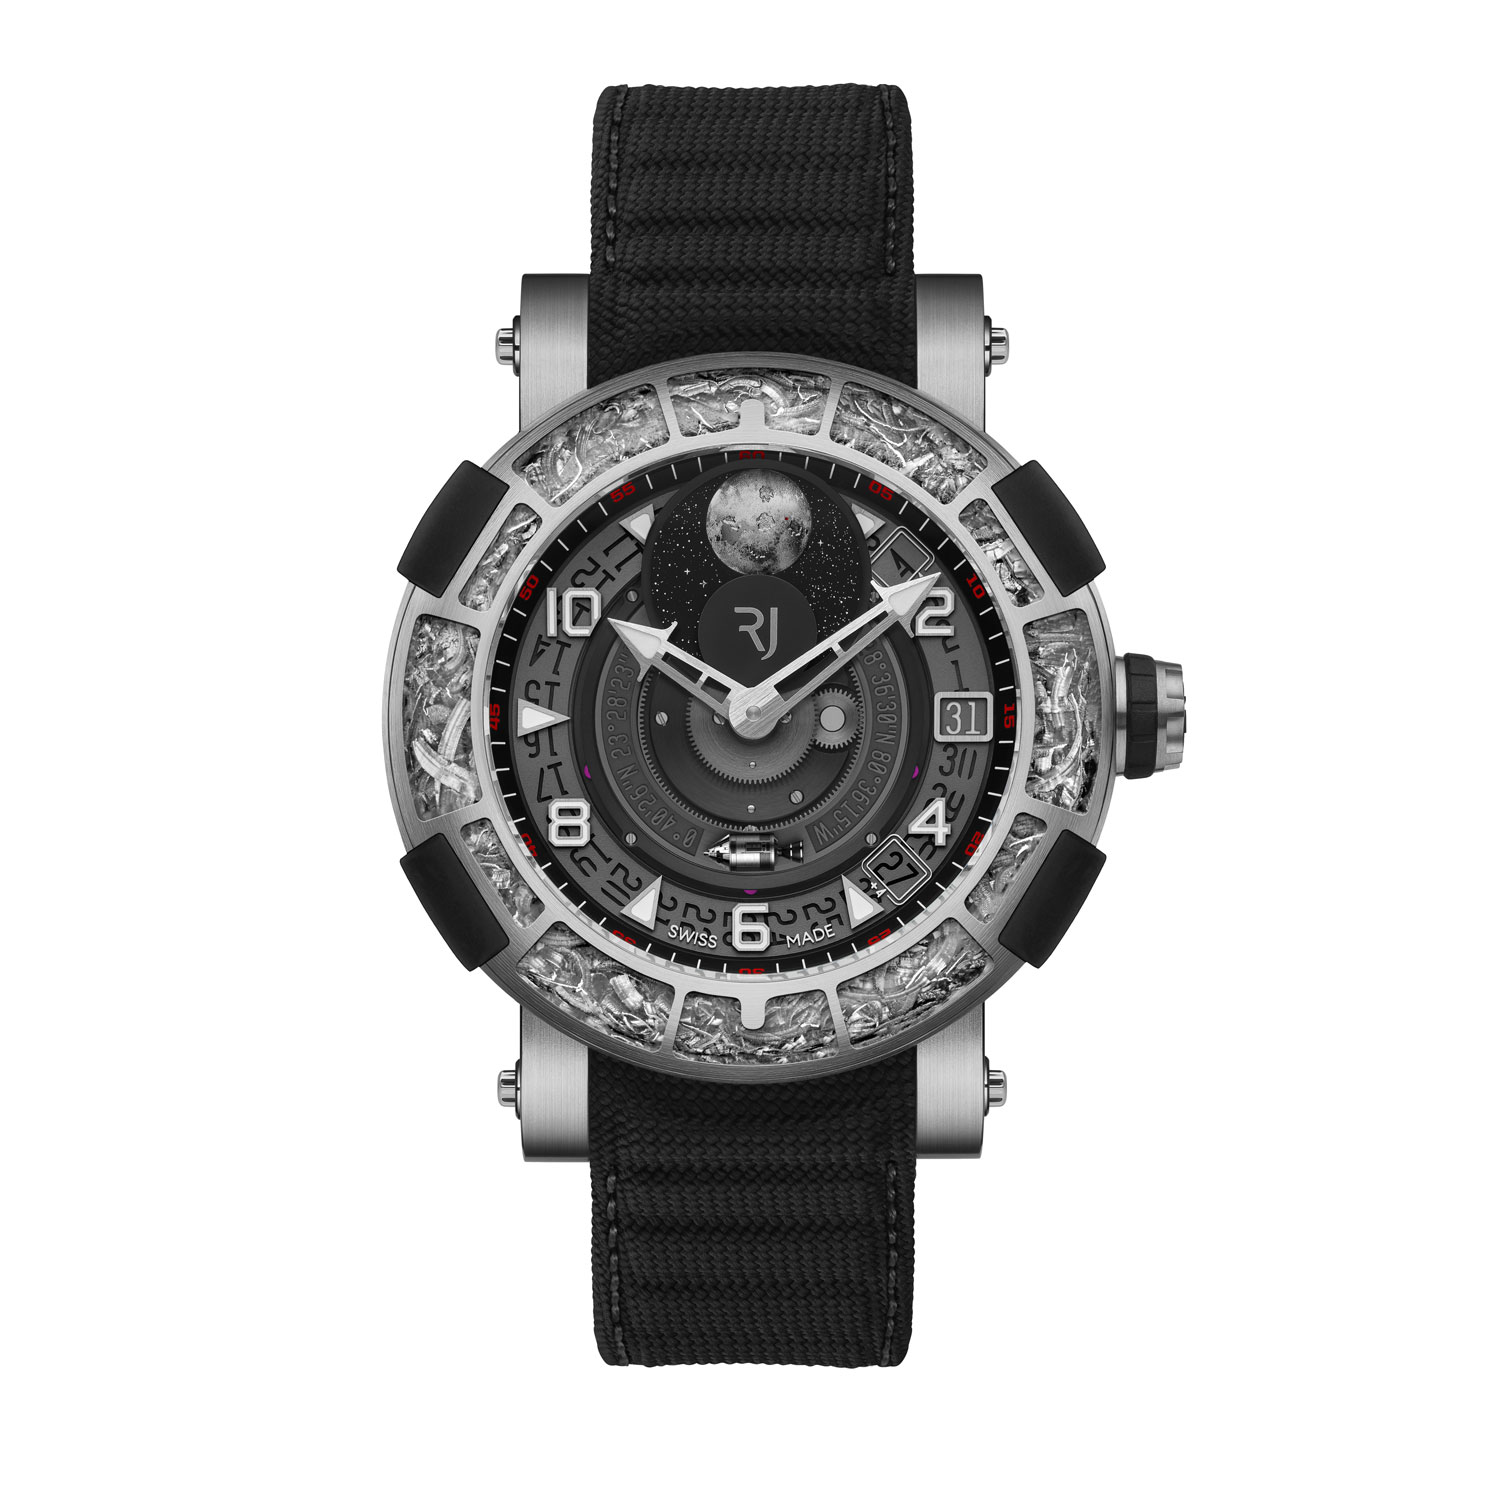 Romain Jerome Arraw 6919 Only Watch Special Edition